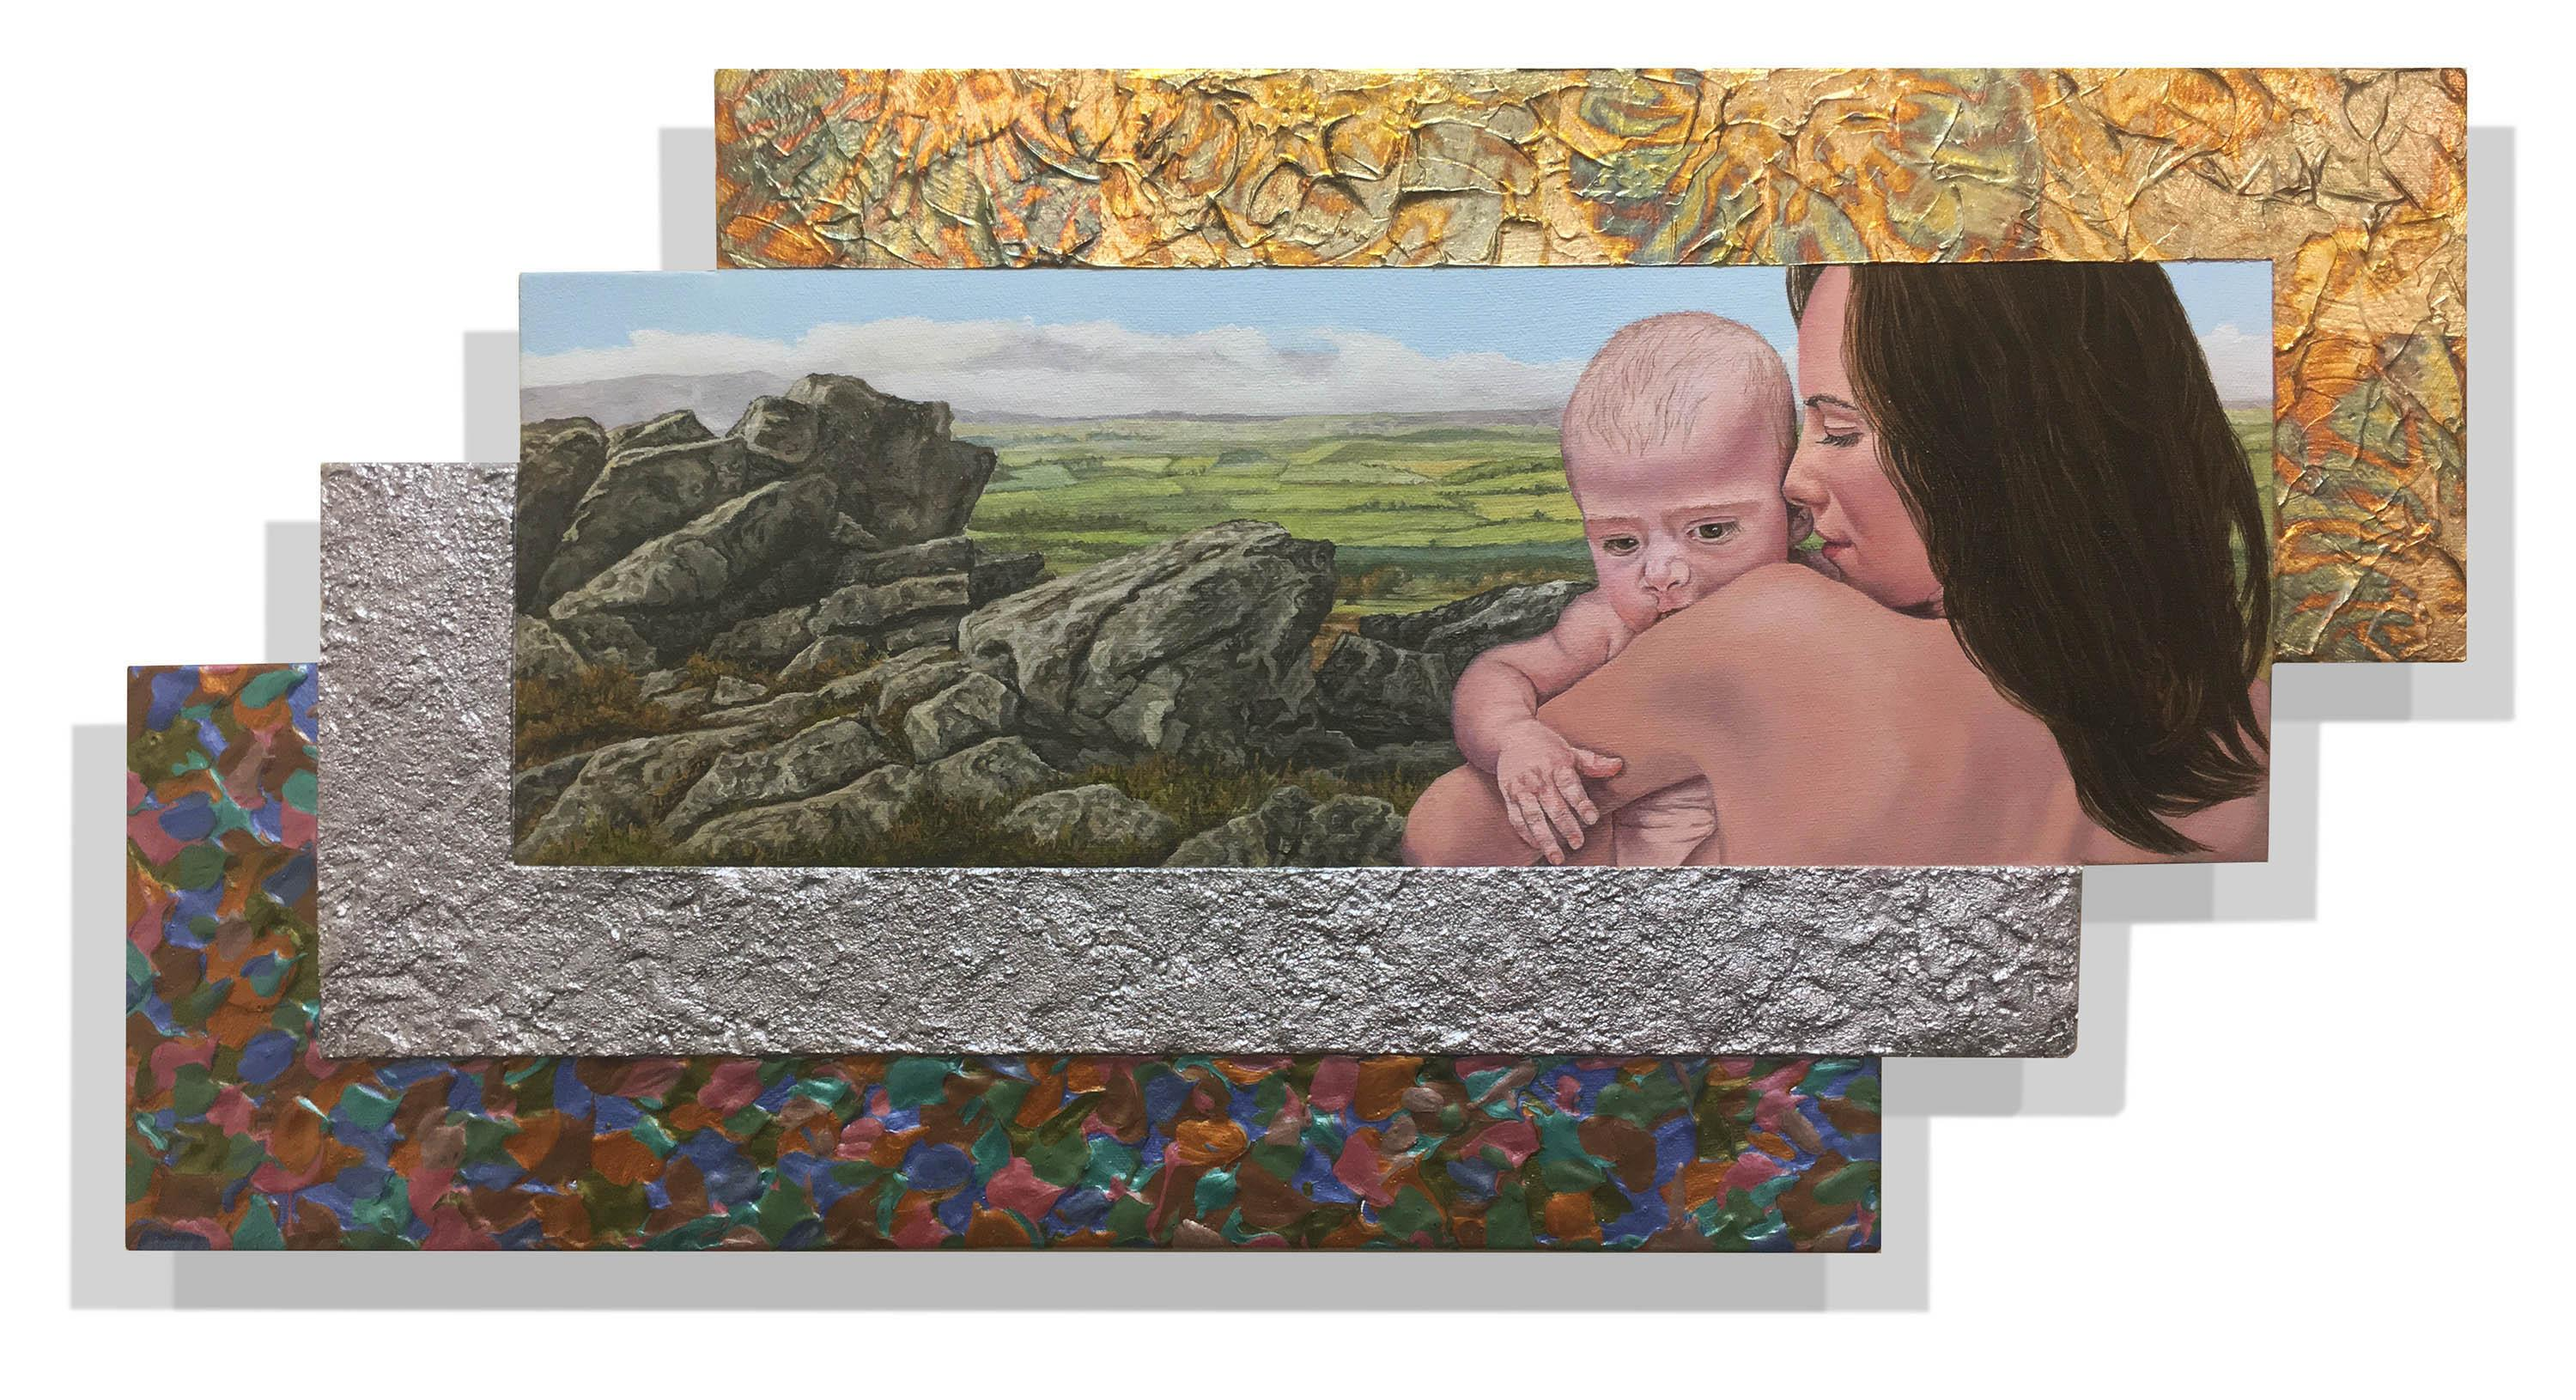 Jack Reilly, Madonna of the Rocks, Mixed Media, 2018